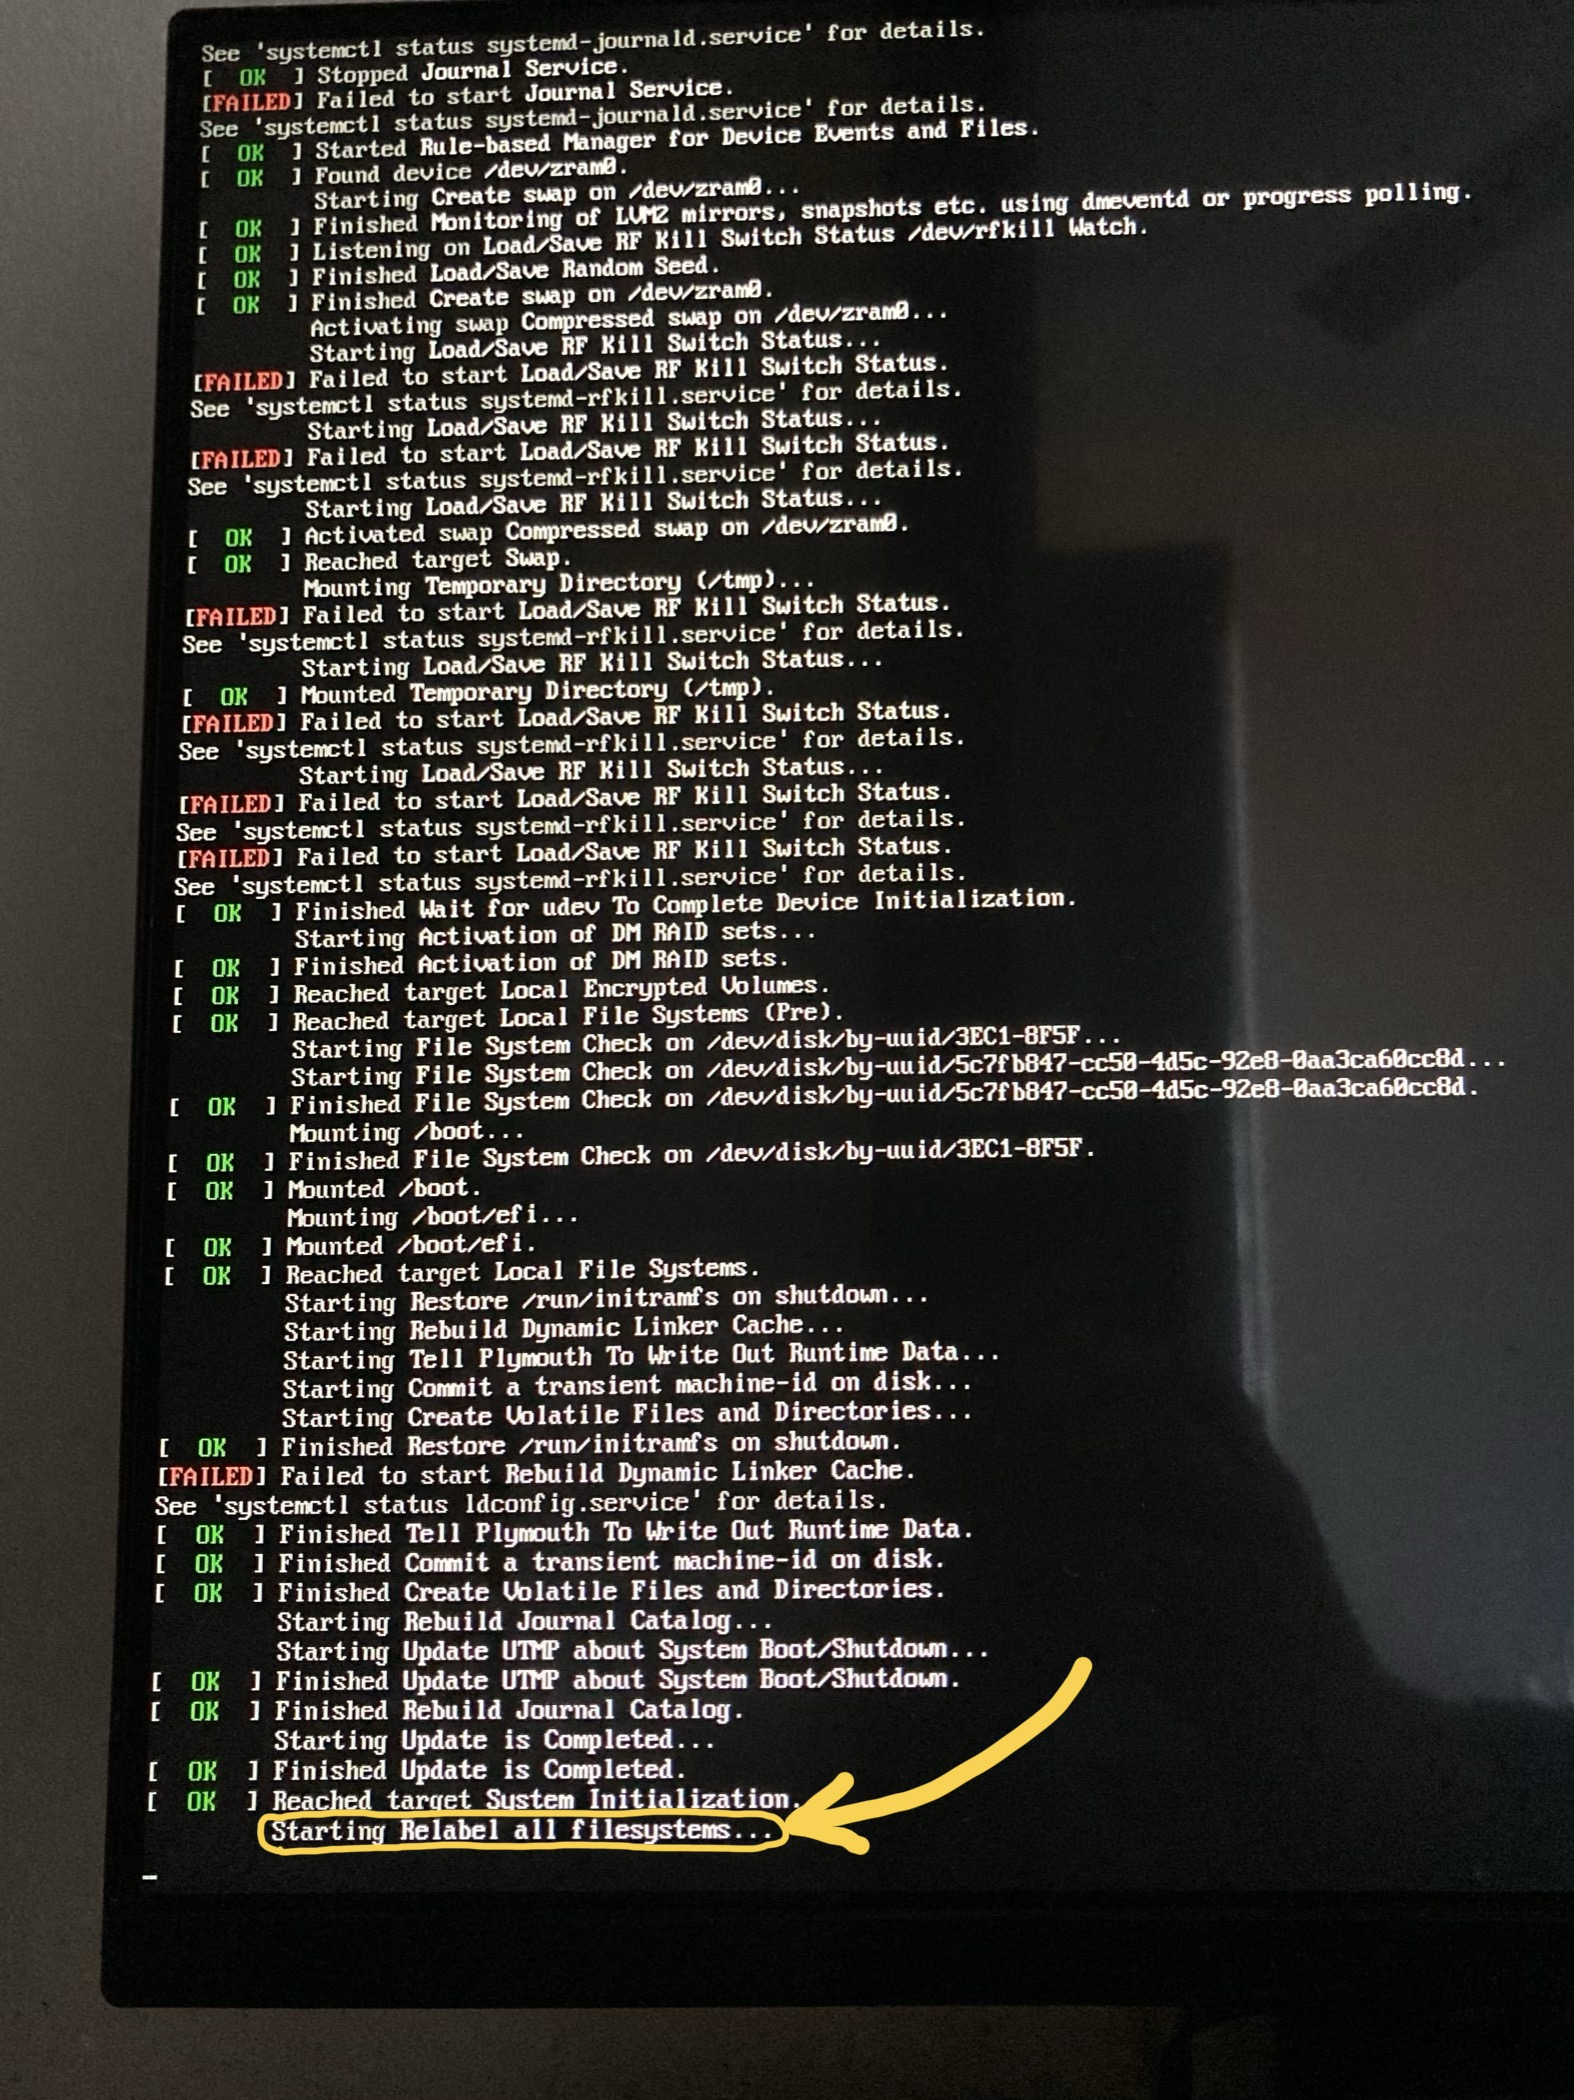 Boot message indicating file systems are being relabeled for SELinux